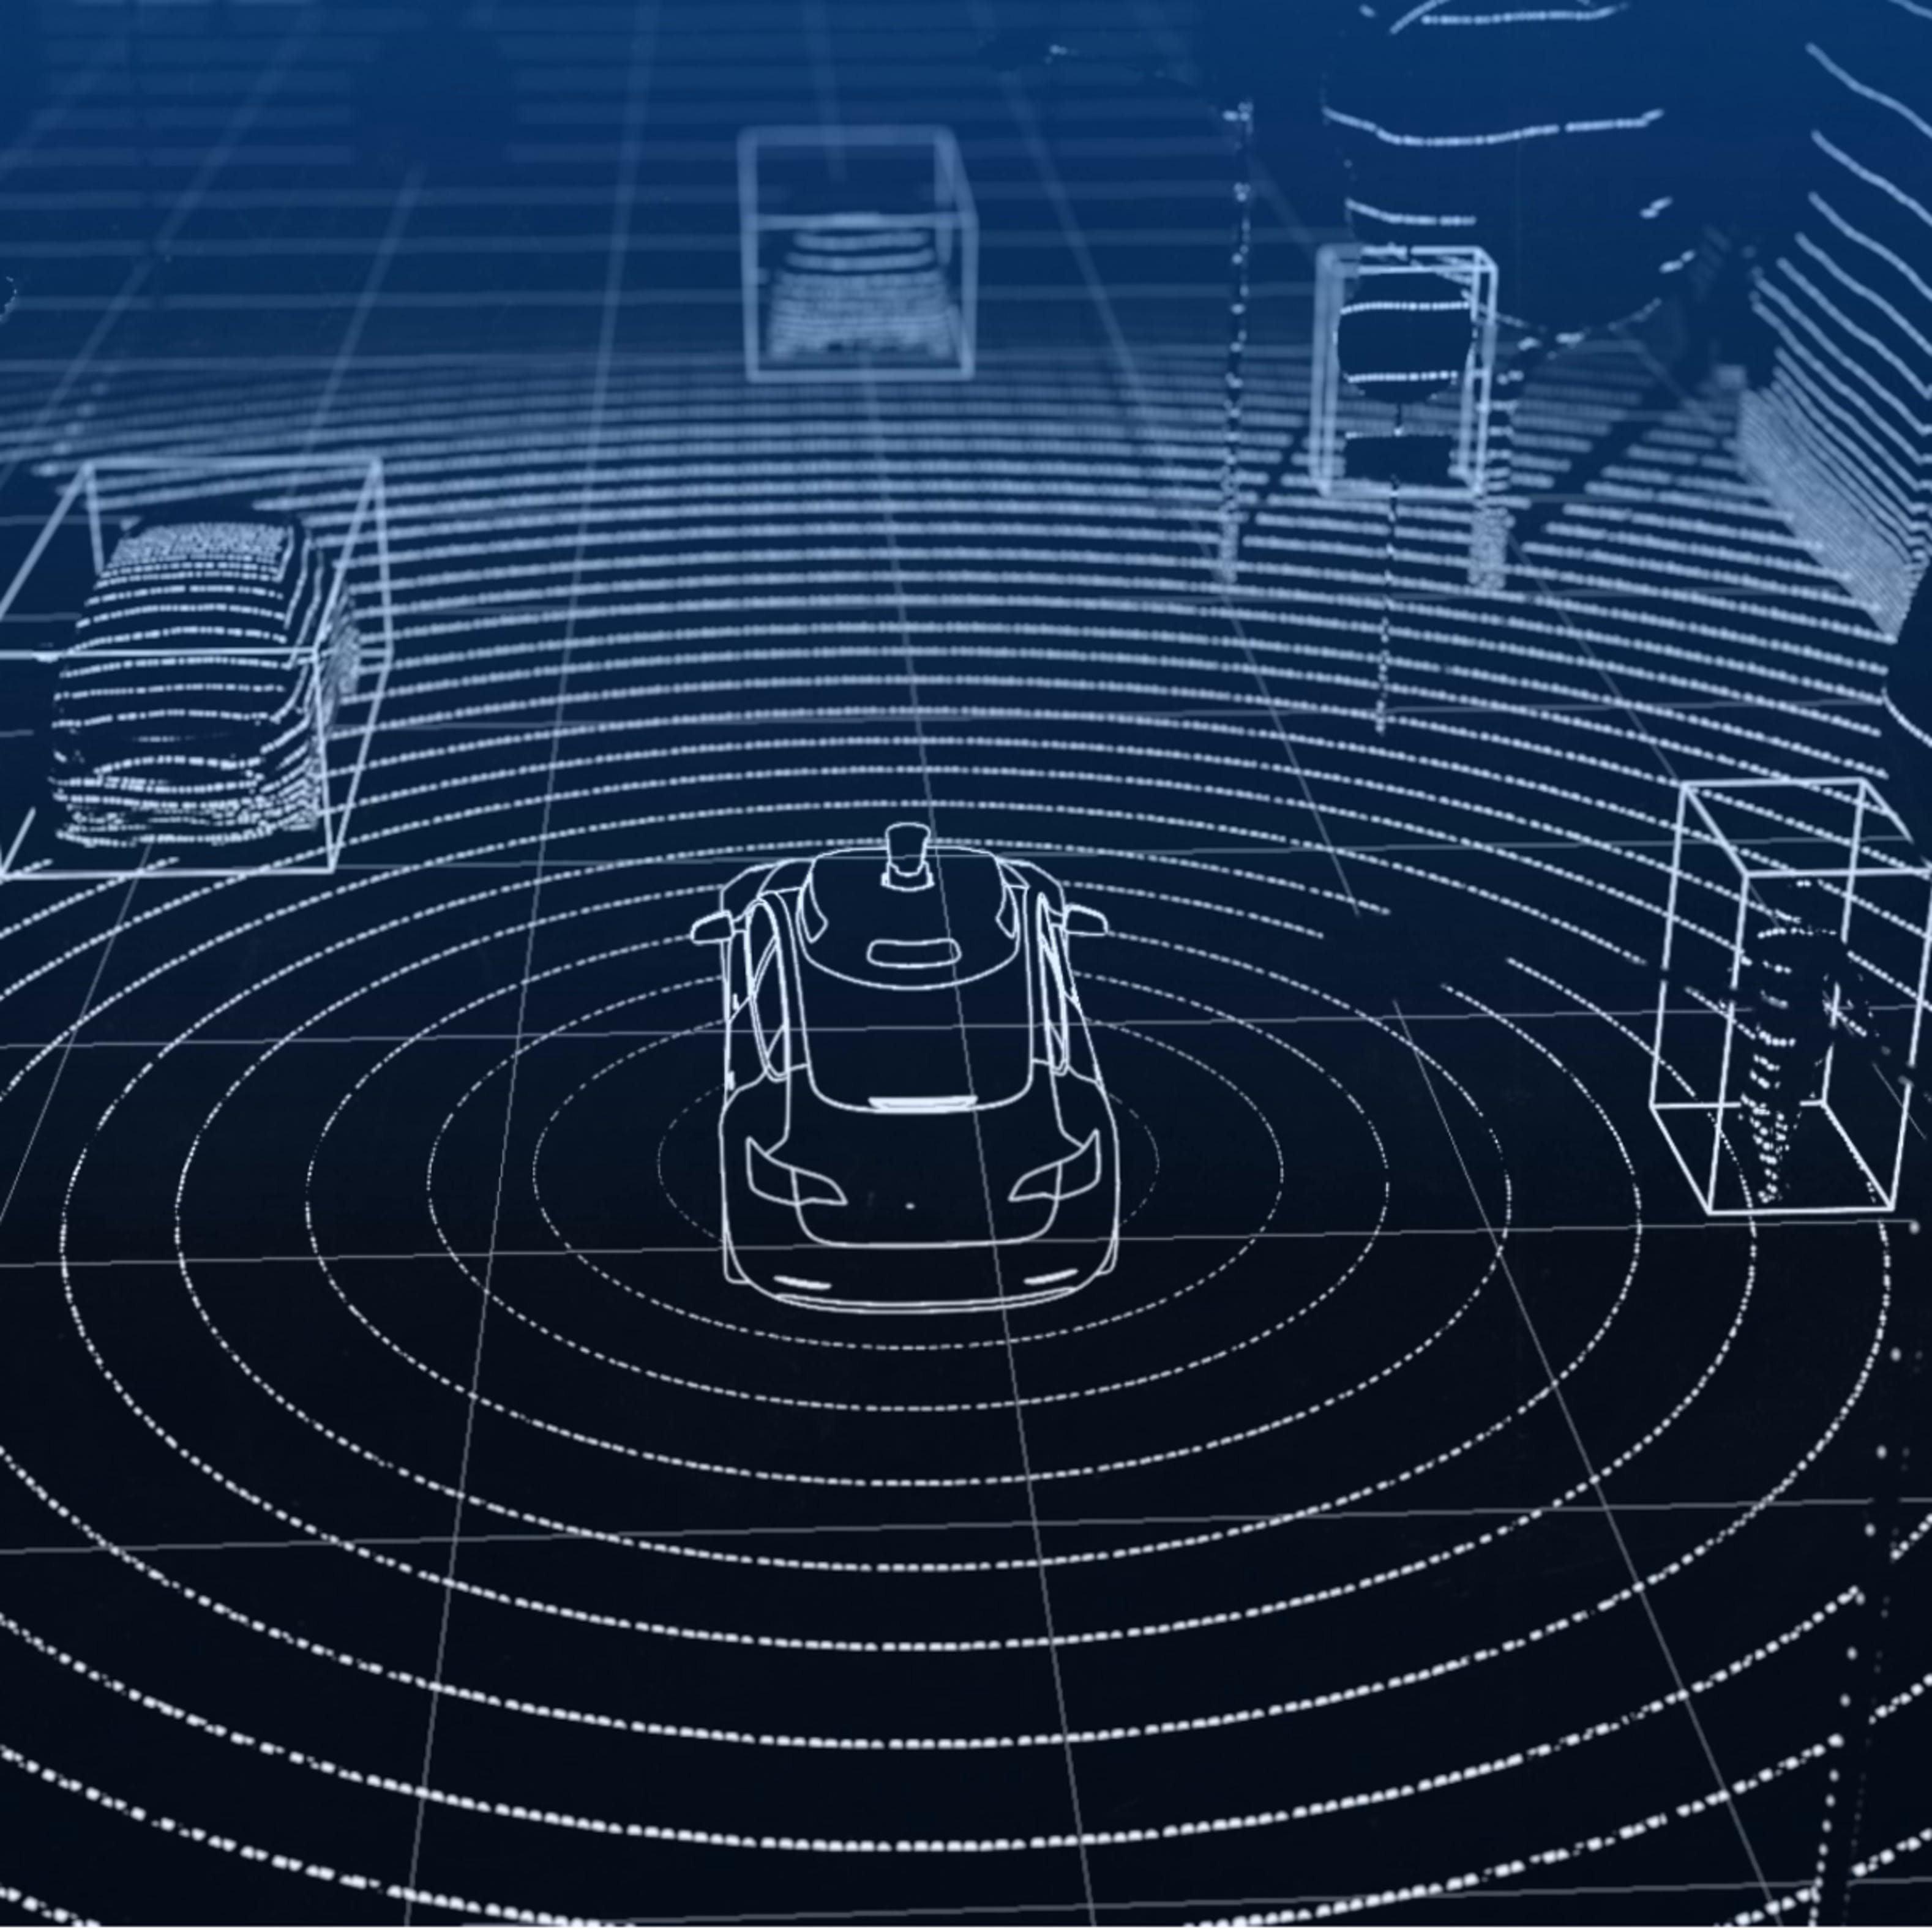 Visual Perception for Self-Driving Cars | Coursera